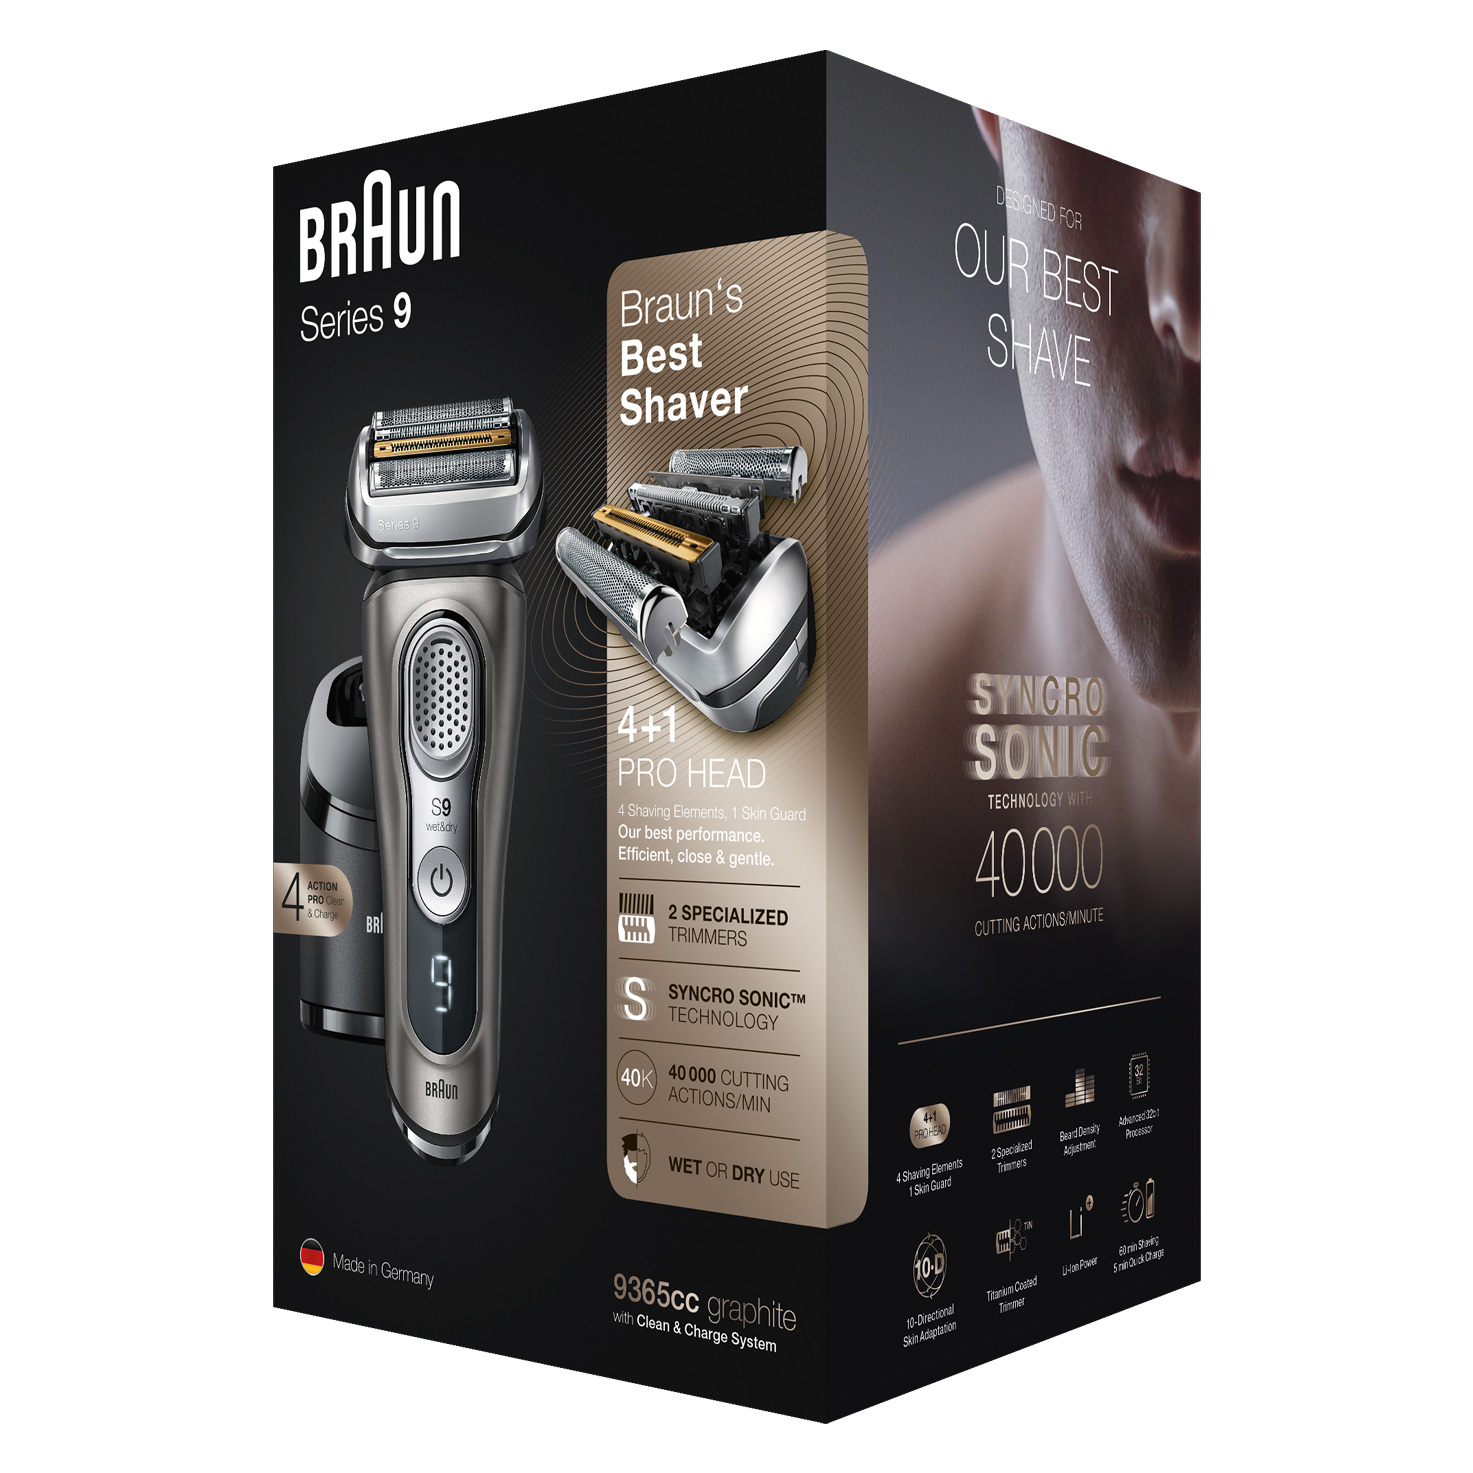 Series 9 9365cc shaver - Packaging